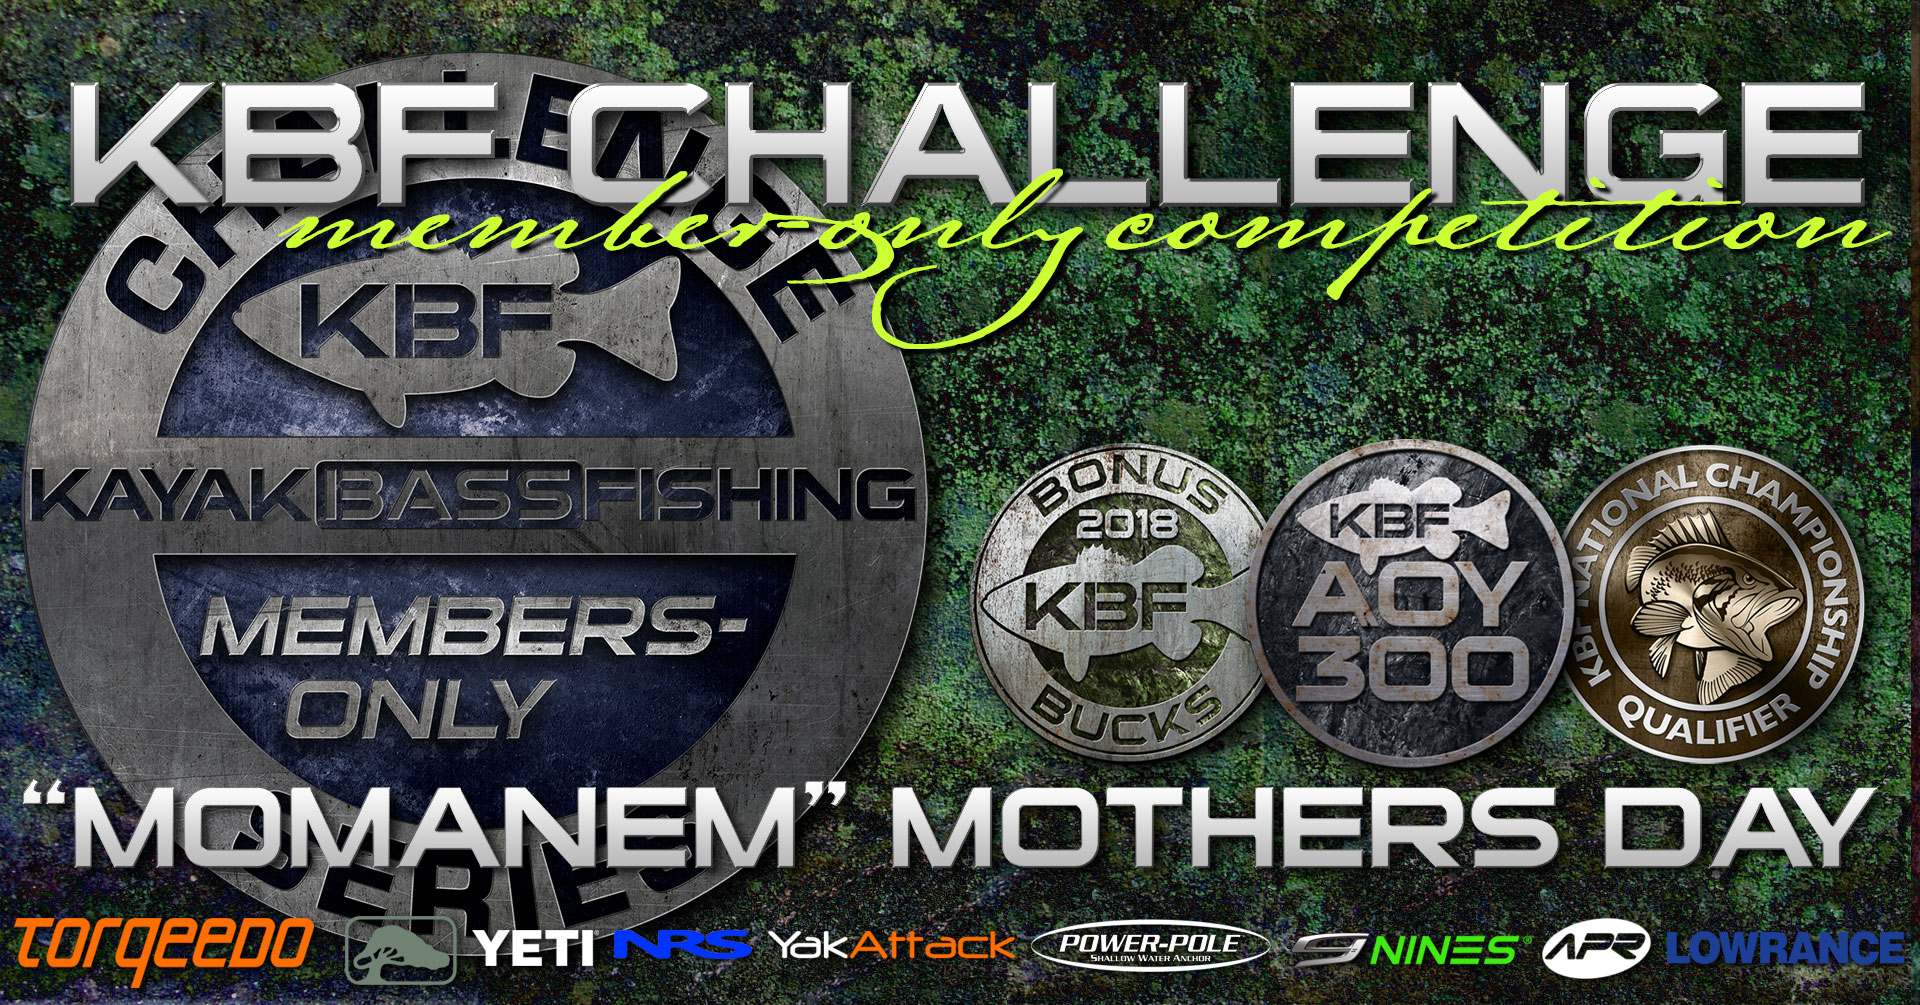 2018 Mothers Day KBF Challenge